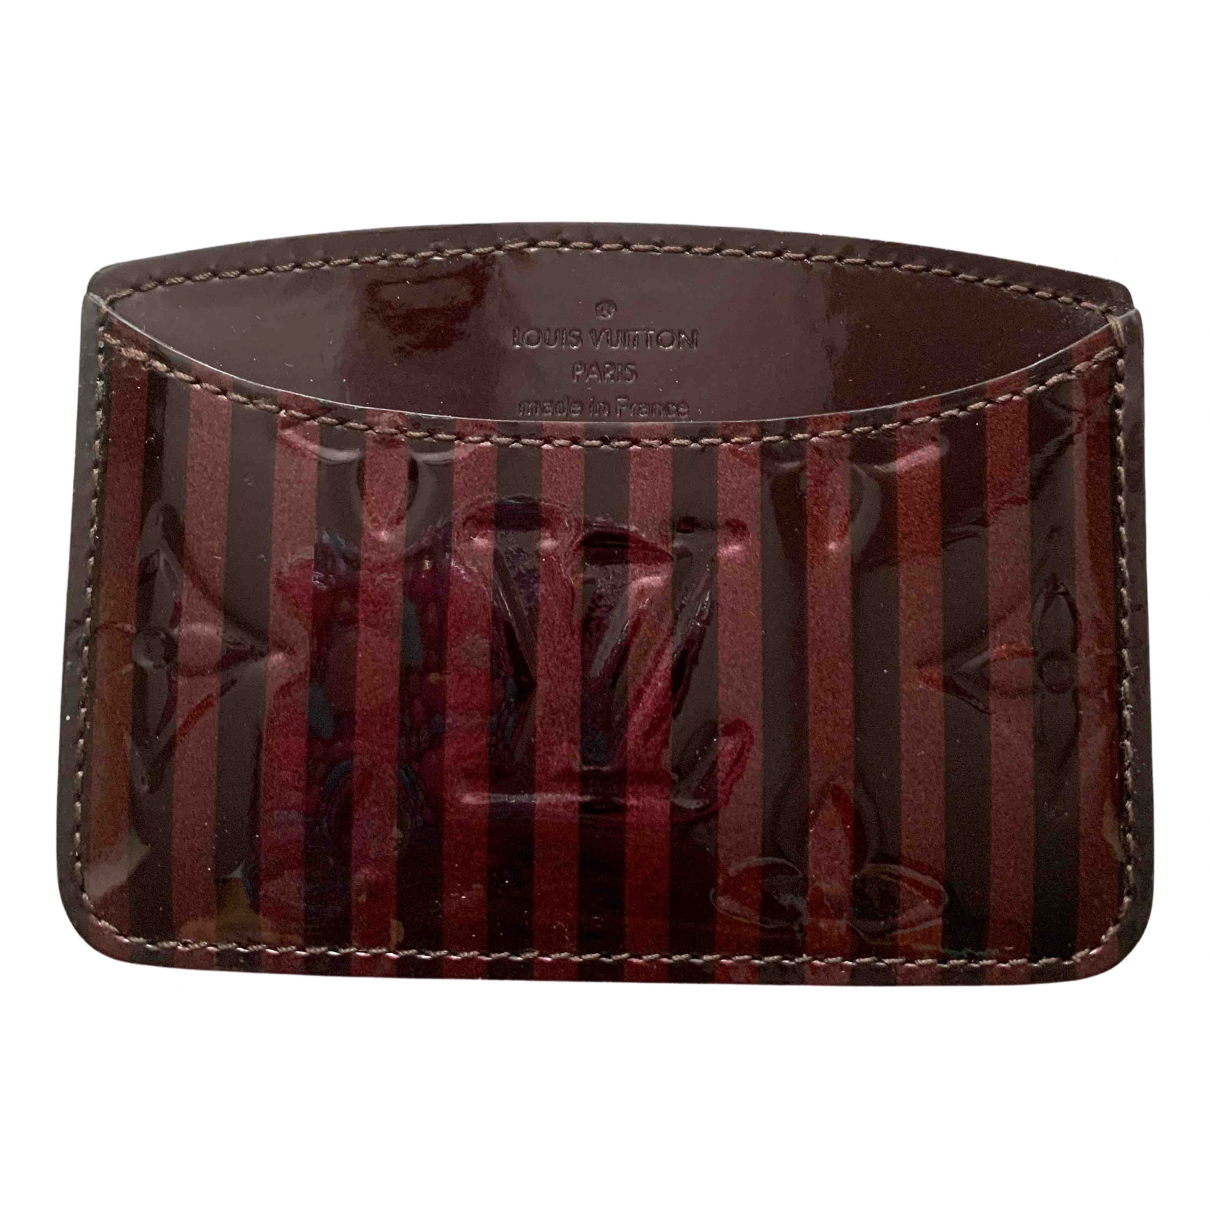 Louis Vuitton \N Burgundy Patent leather Purses, wallet & cases for Women \N